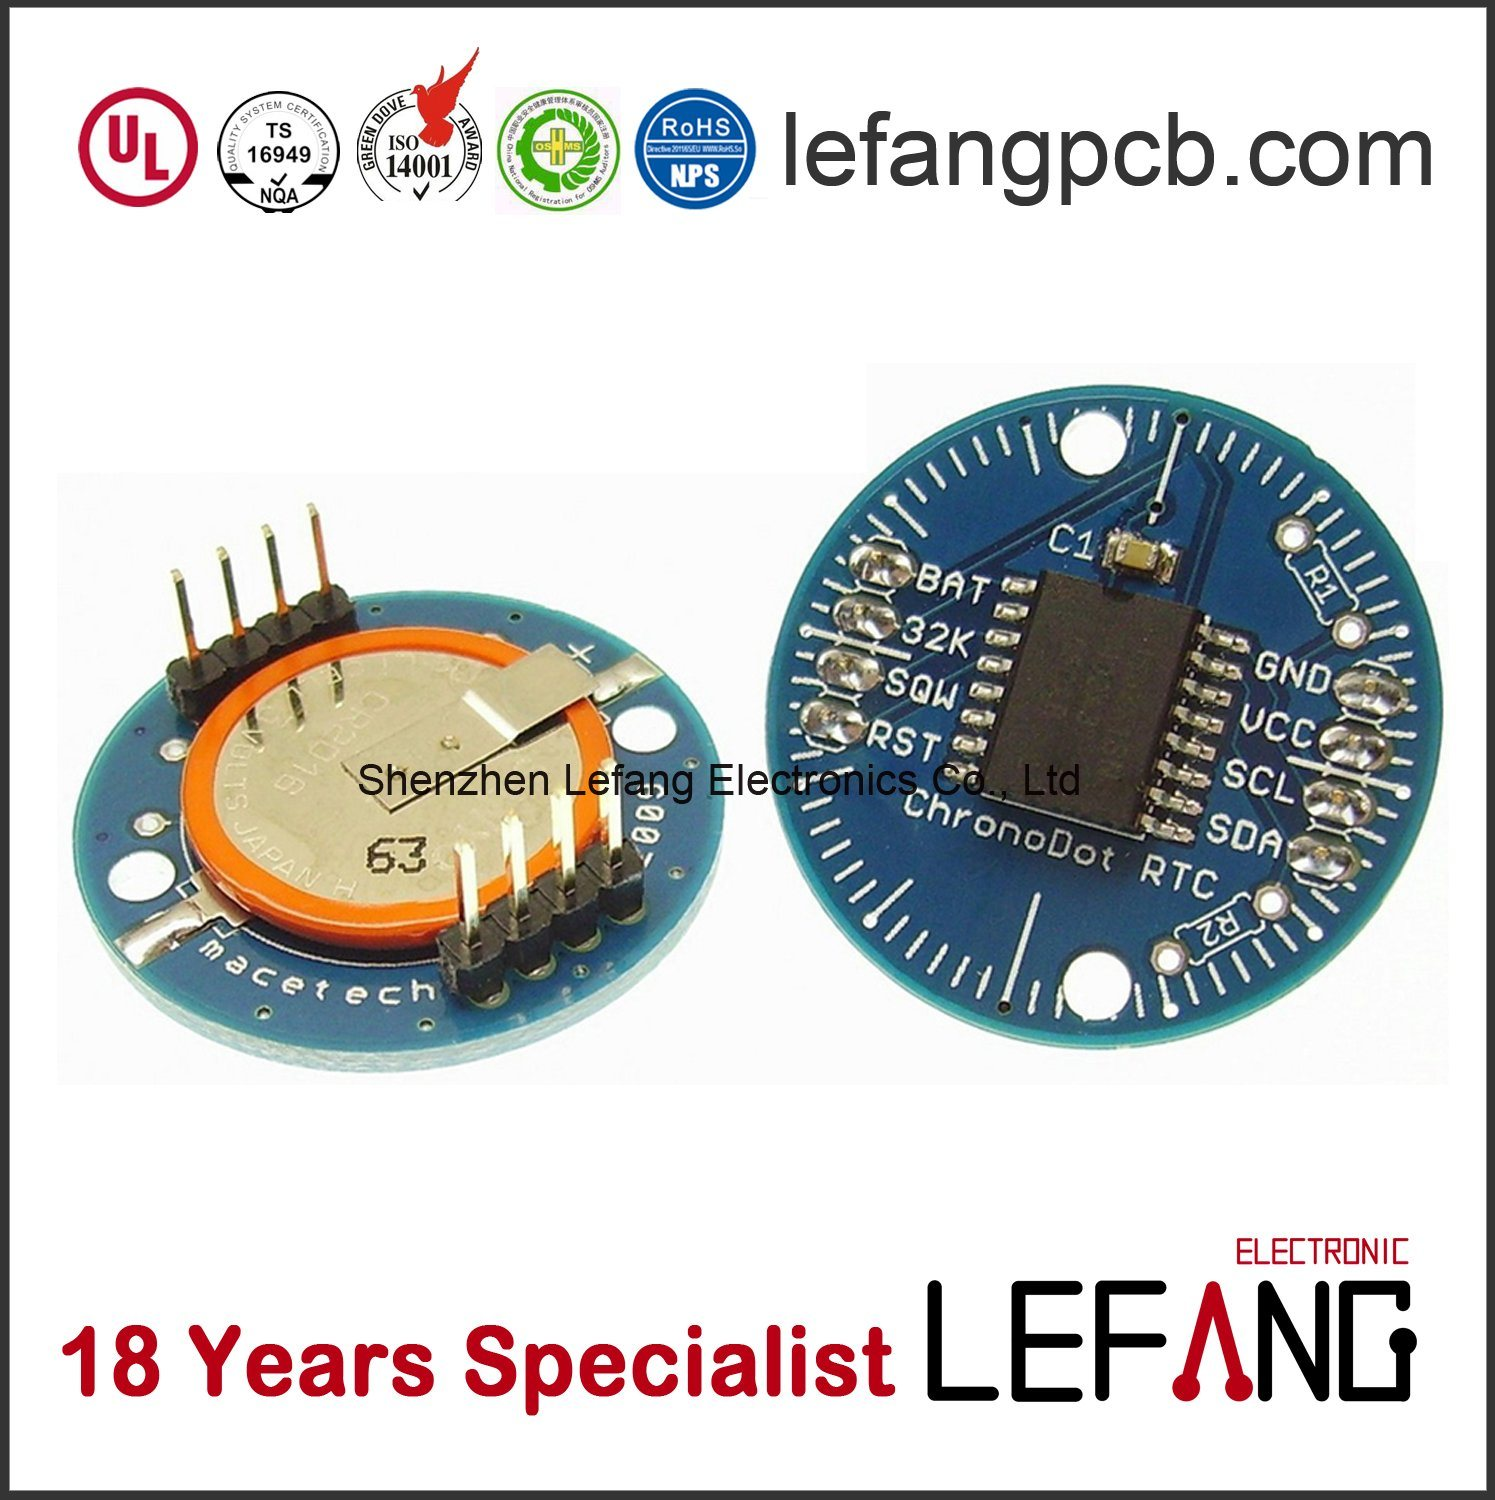 Wholesale Printed Pcb Assembly Buy Reliable 94vo Circuit Board Six Layer Hasl Lf 1 20 Layers Pcba